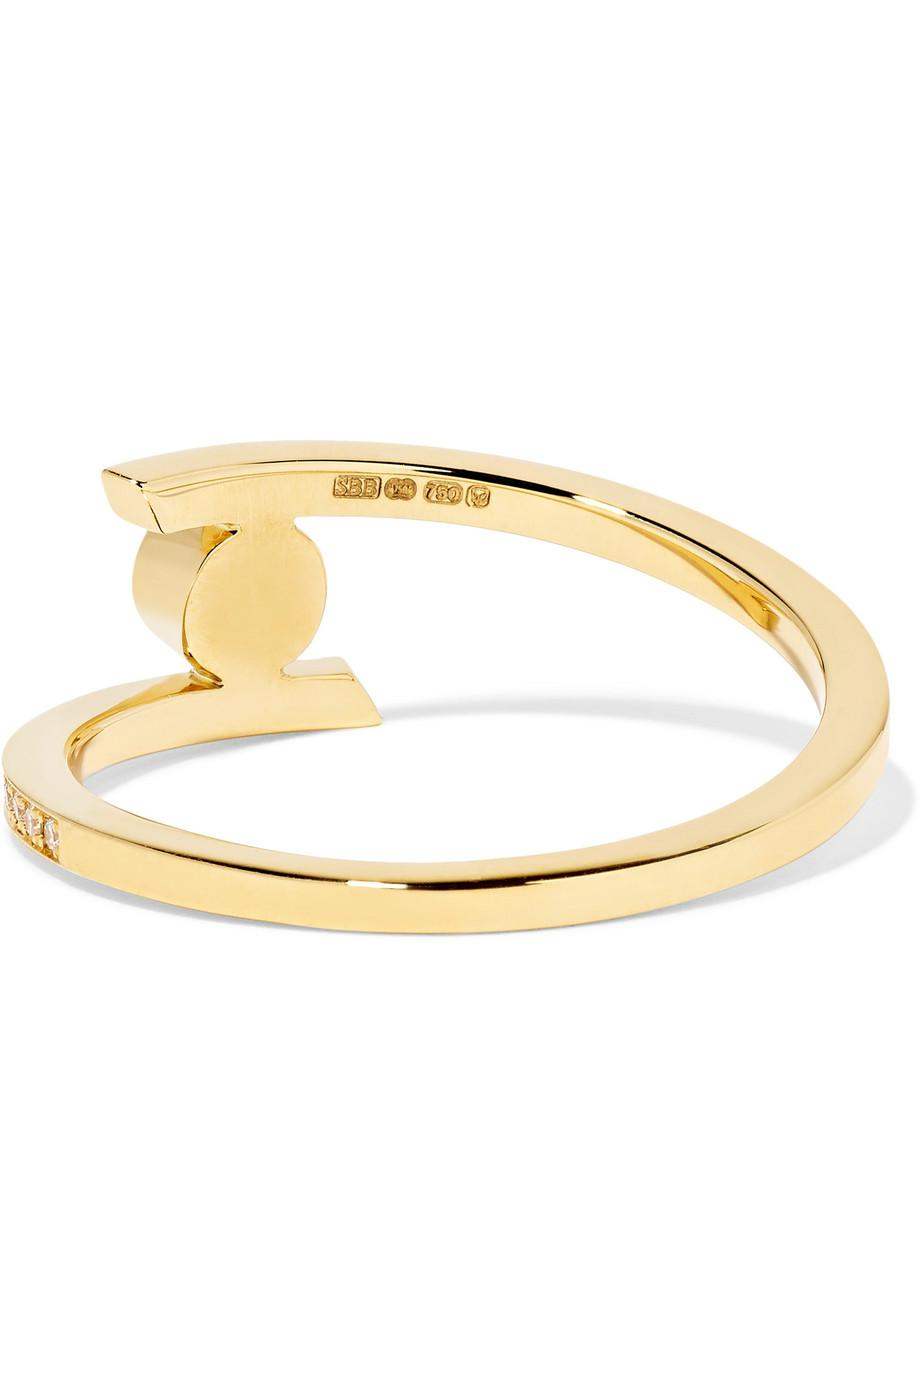 Sophie Bille Brahe Amour 18-karat Gold Diamond Ring MSGx61oBq